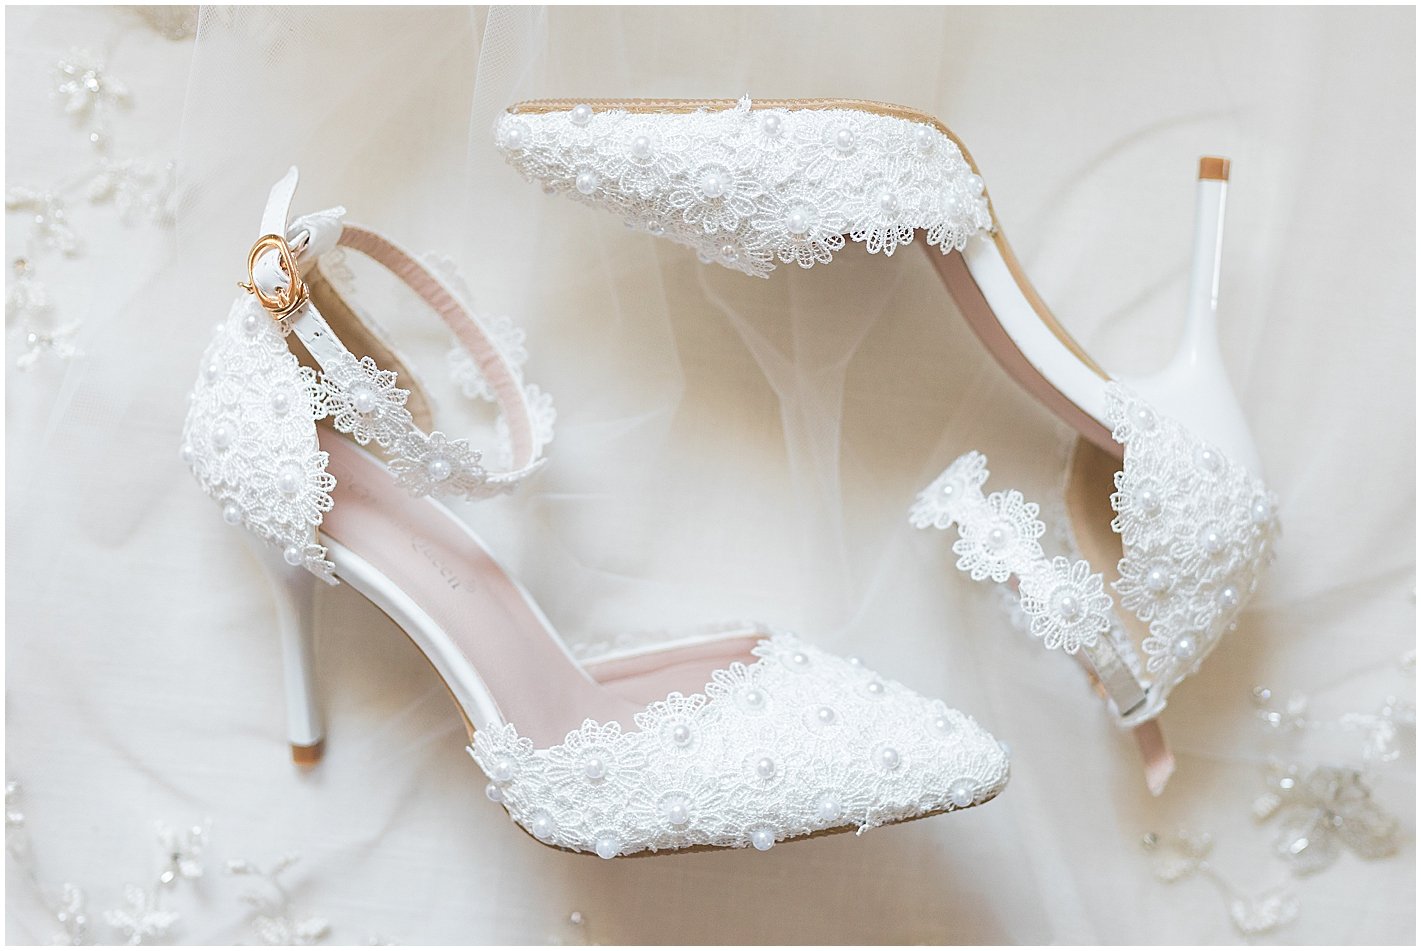 Beautiful Lace Wedding Pumps Photo by Alyssa Parker Photography